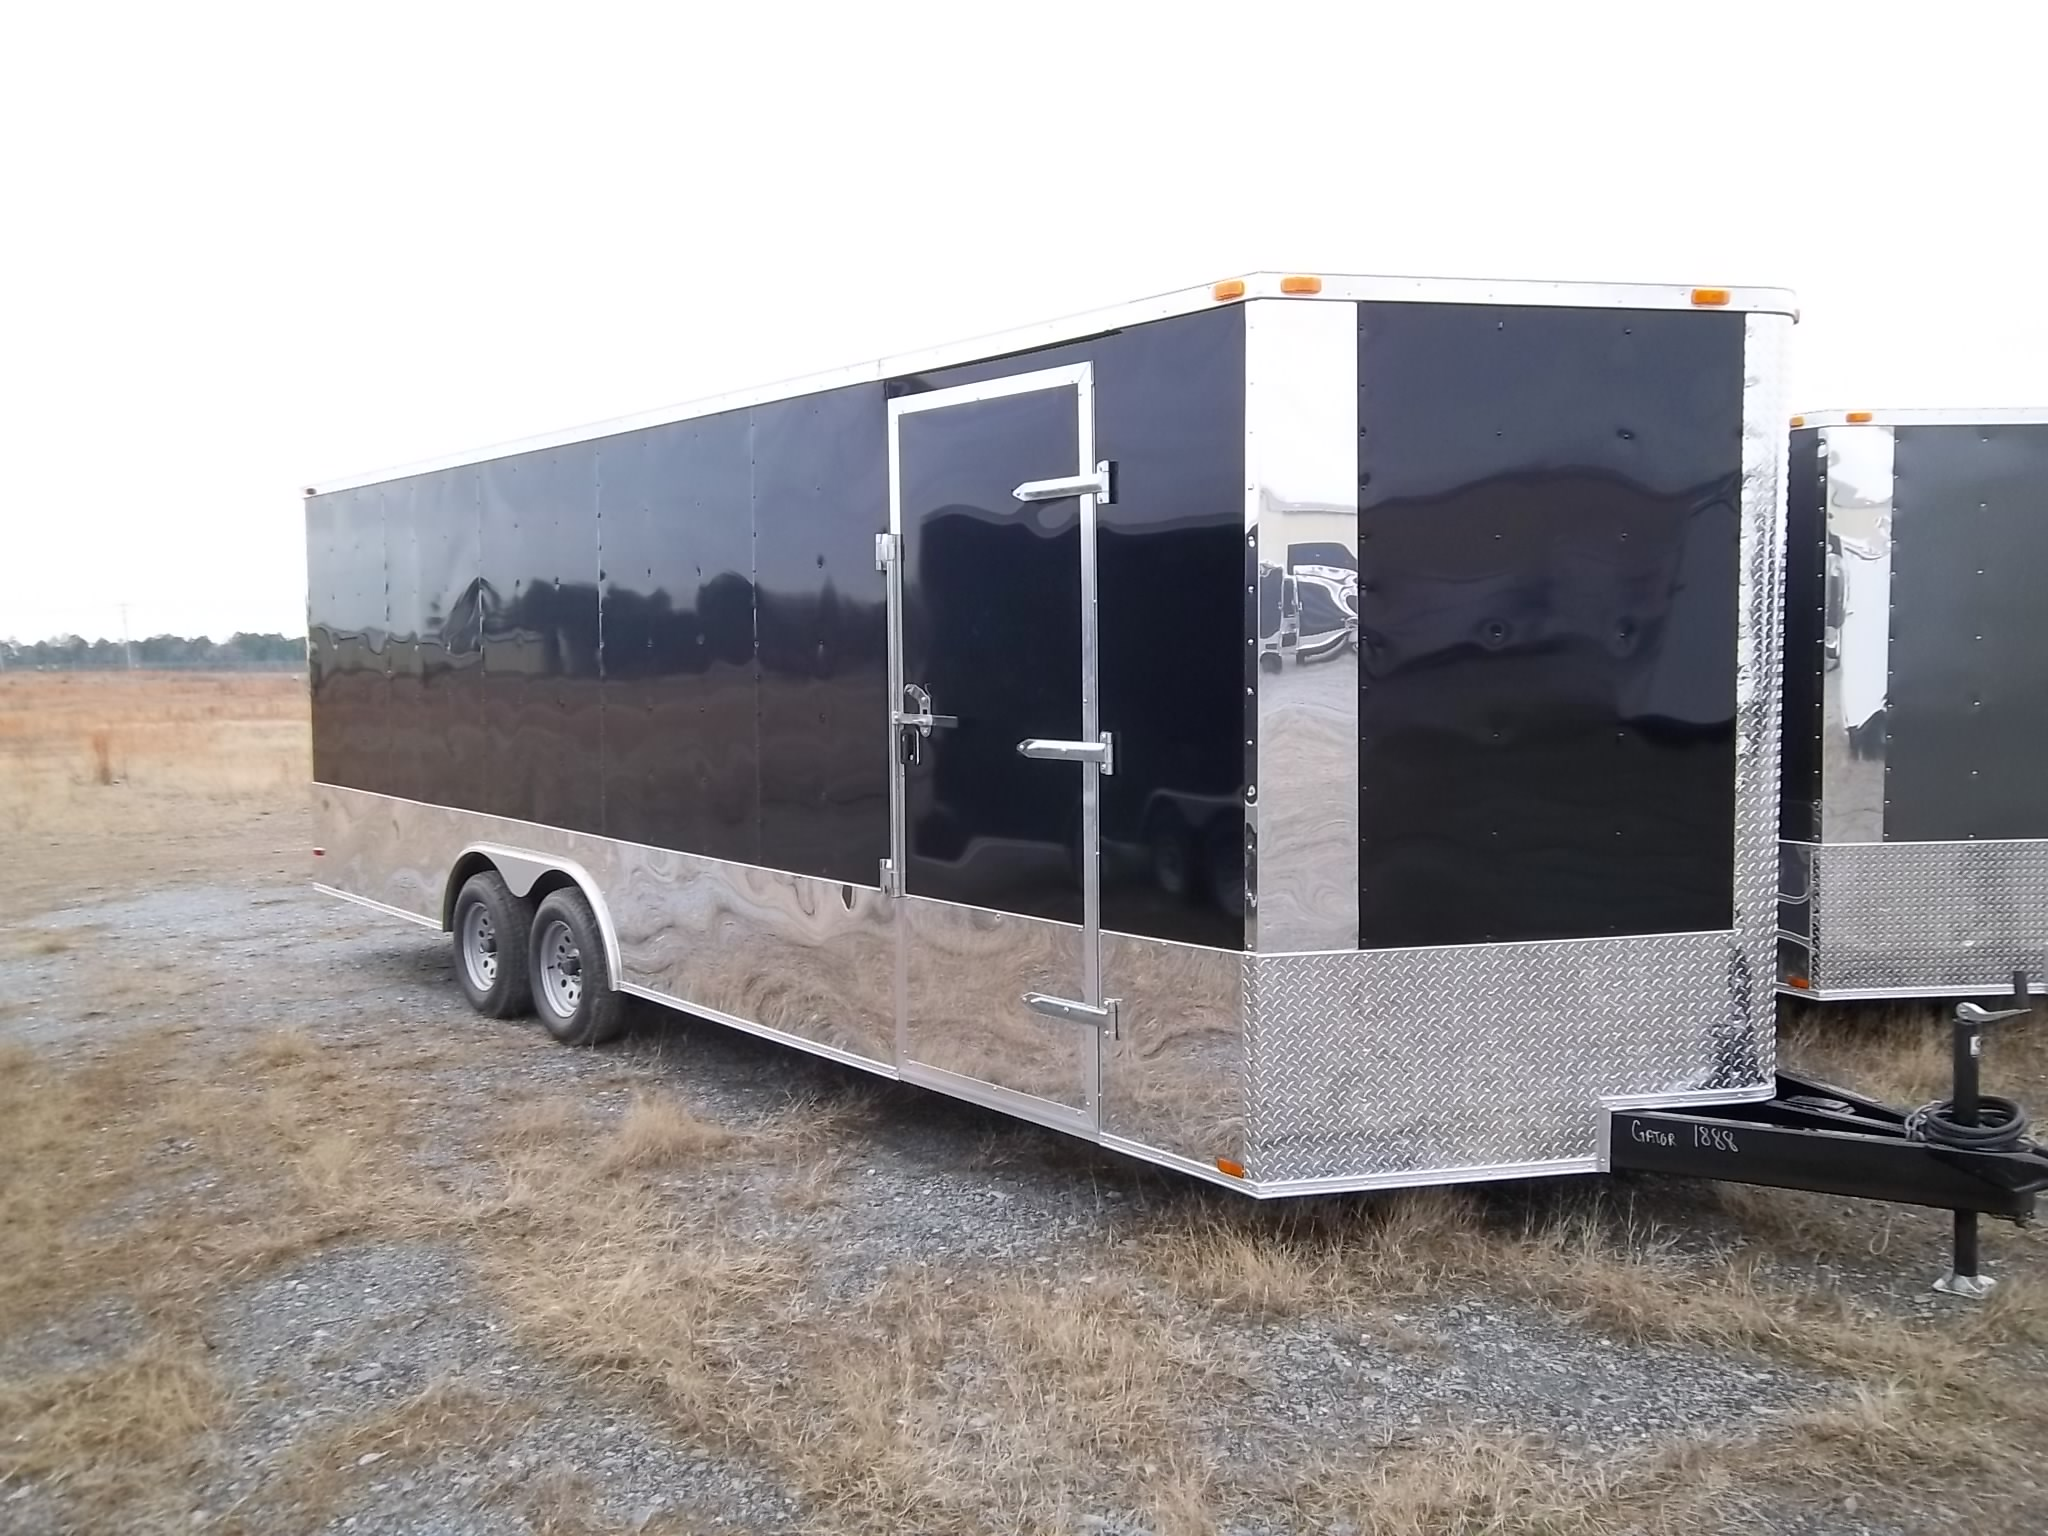 26′ Enclosed Cargo Auto Car Hauler 8.5 x 26 7k GVWR/GWR